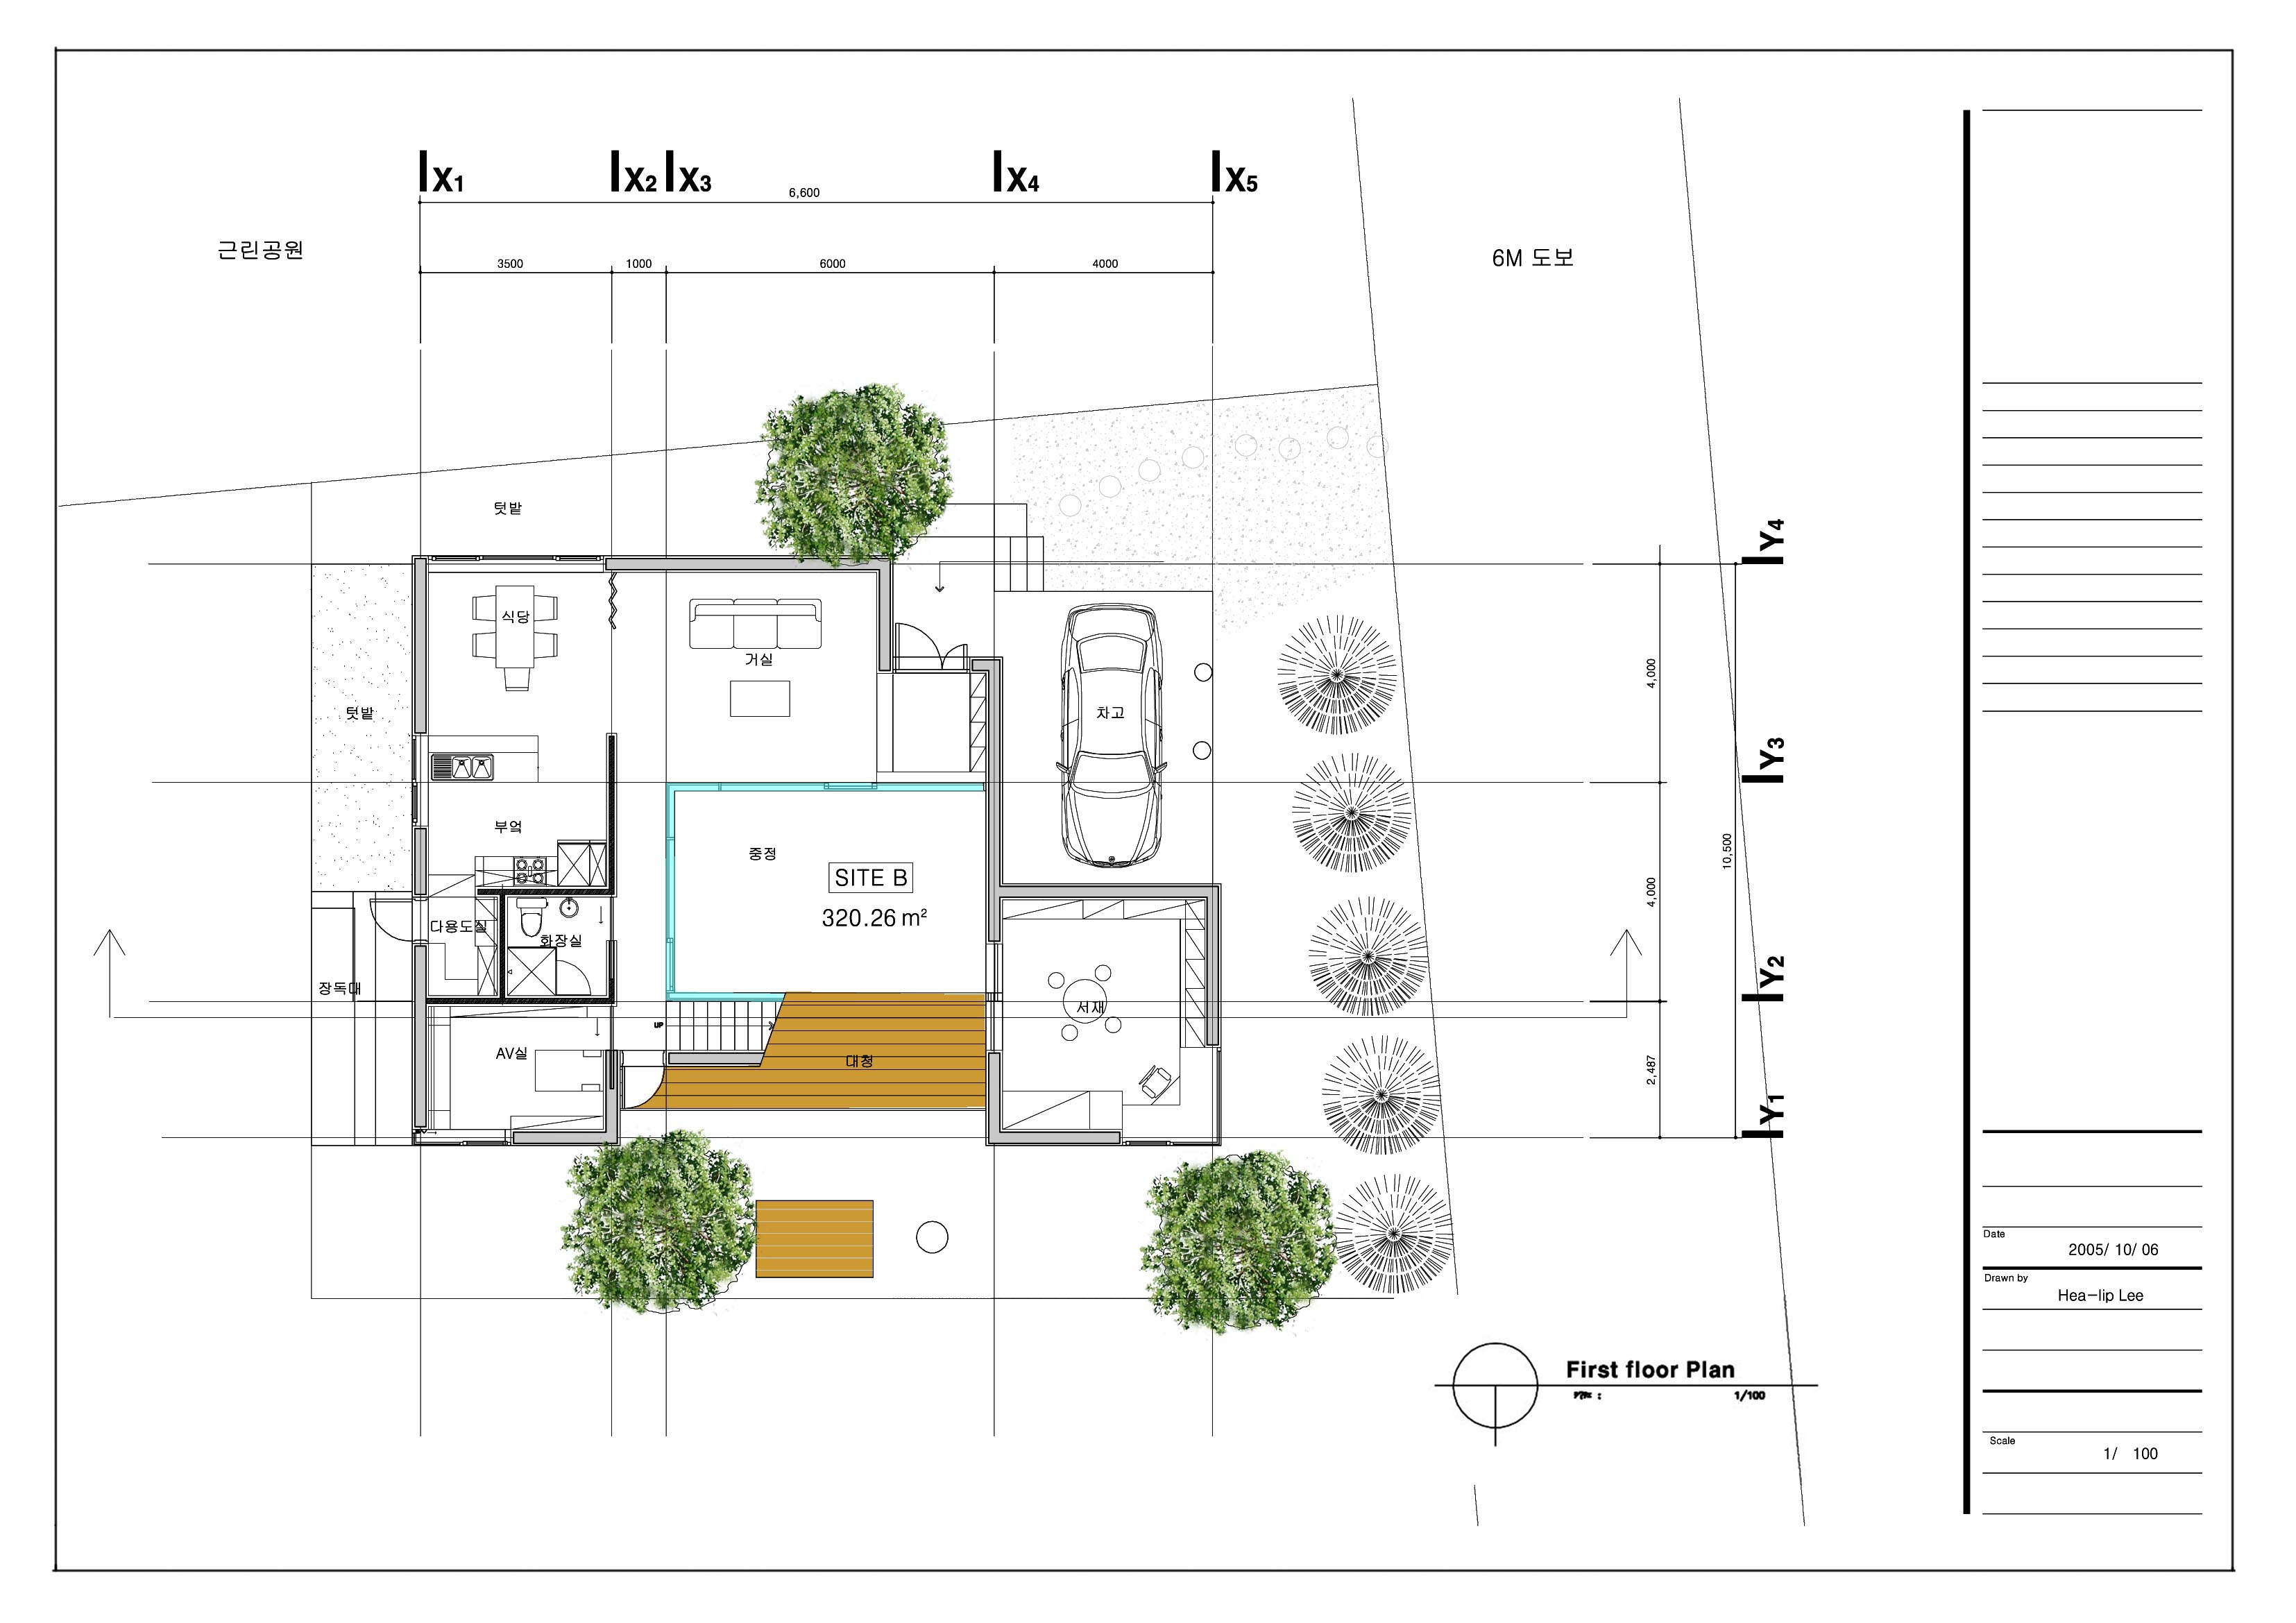 Cad Plan 1st Floor